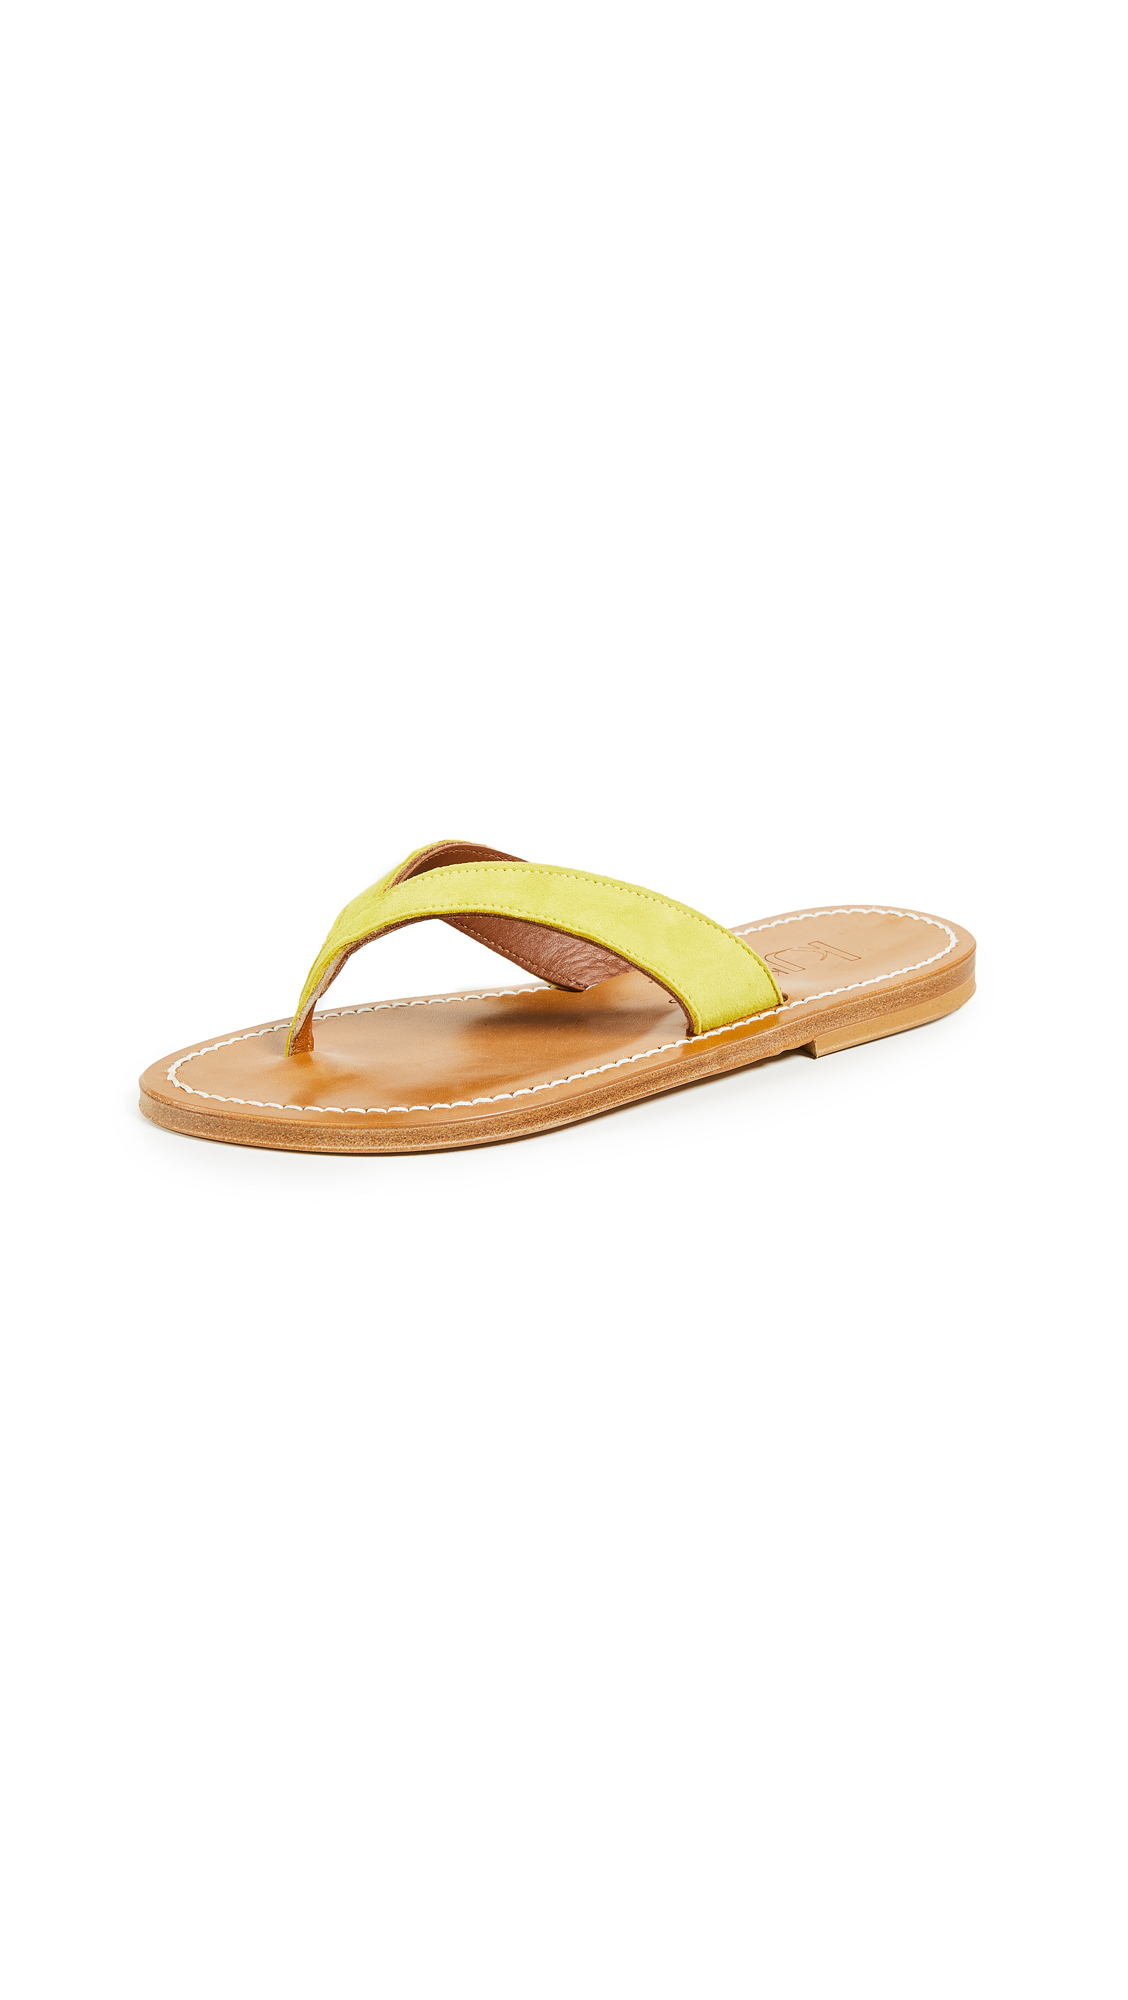 K. Jacques Popee Thong Sandals - Velours Amarillo